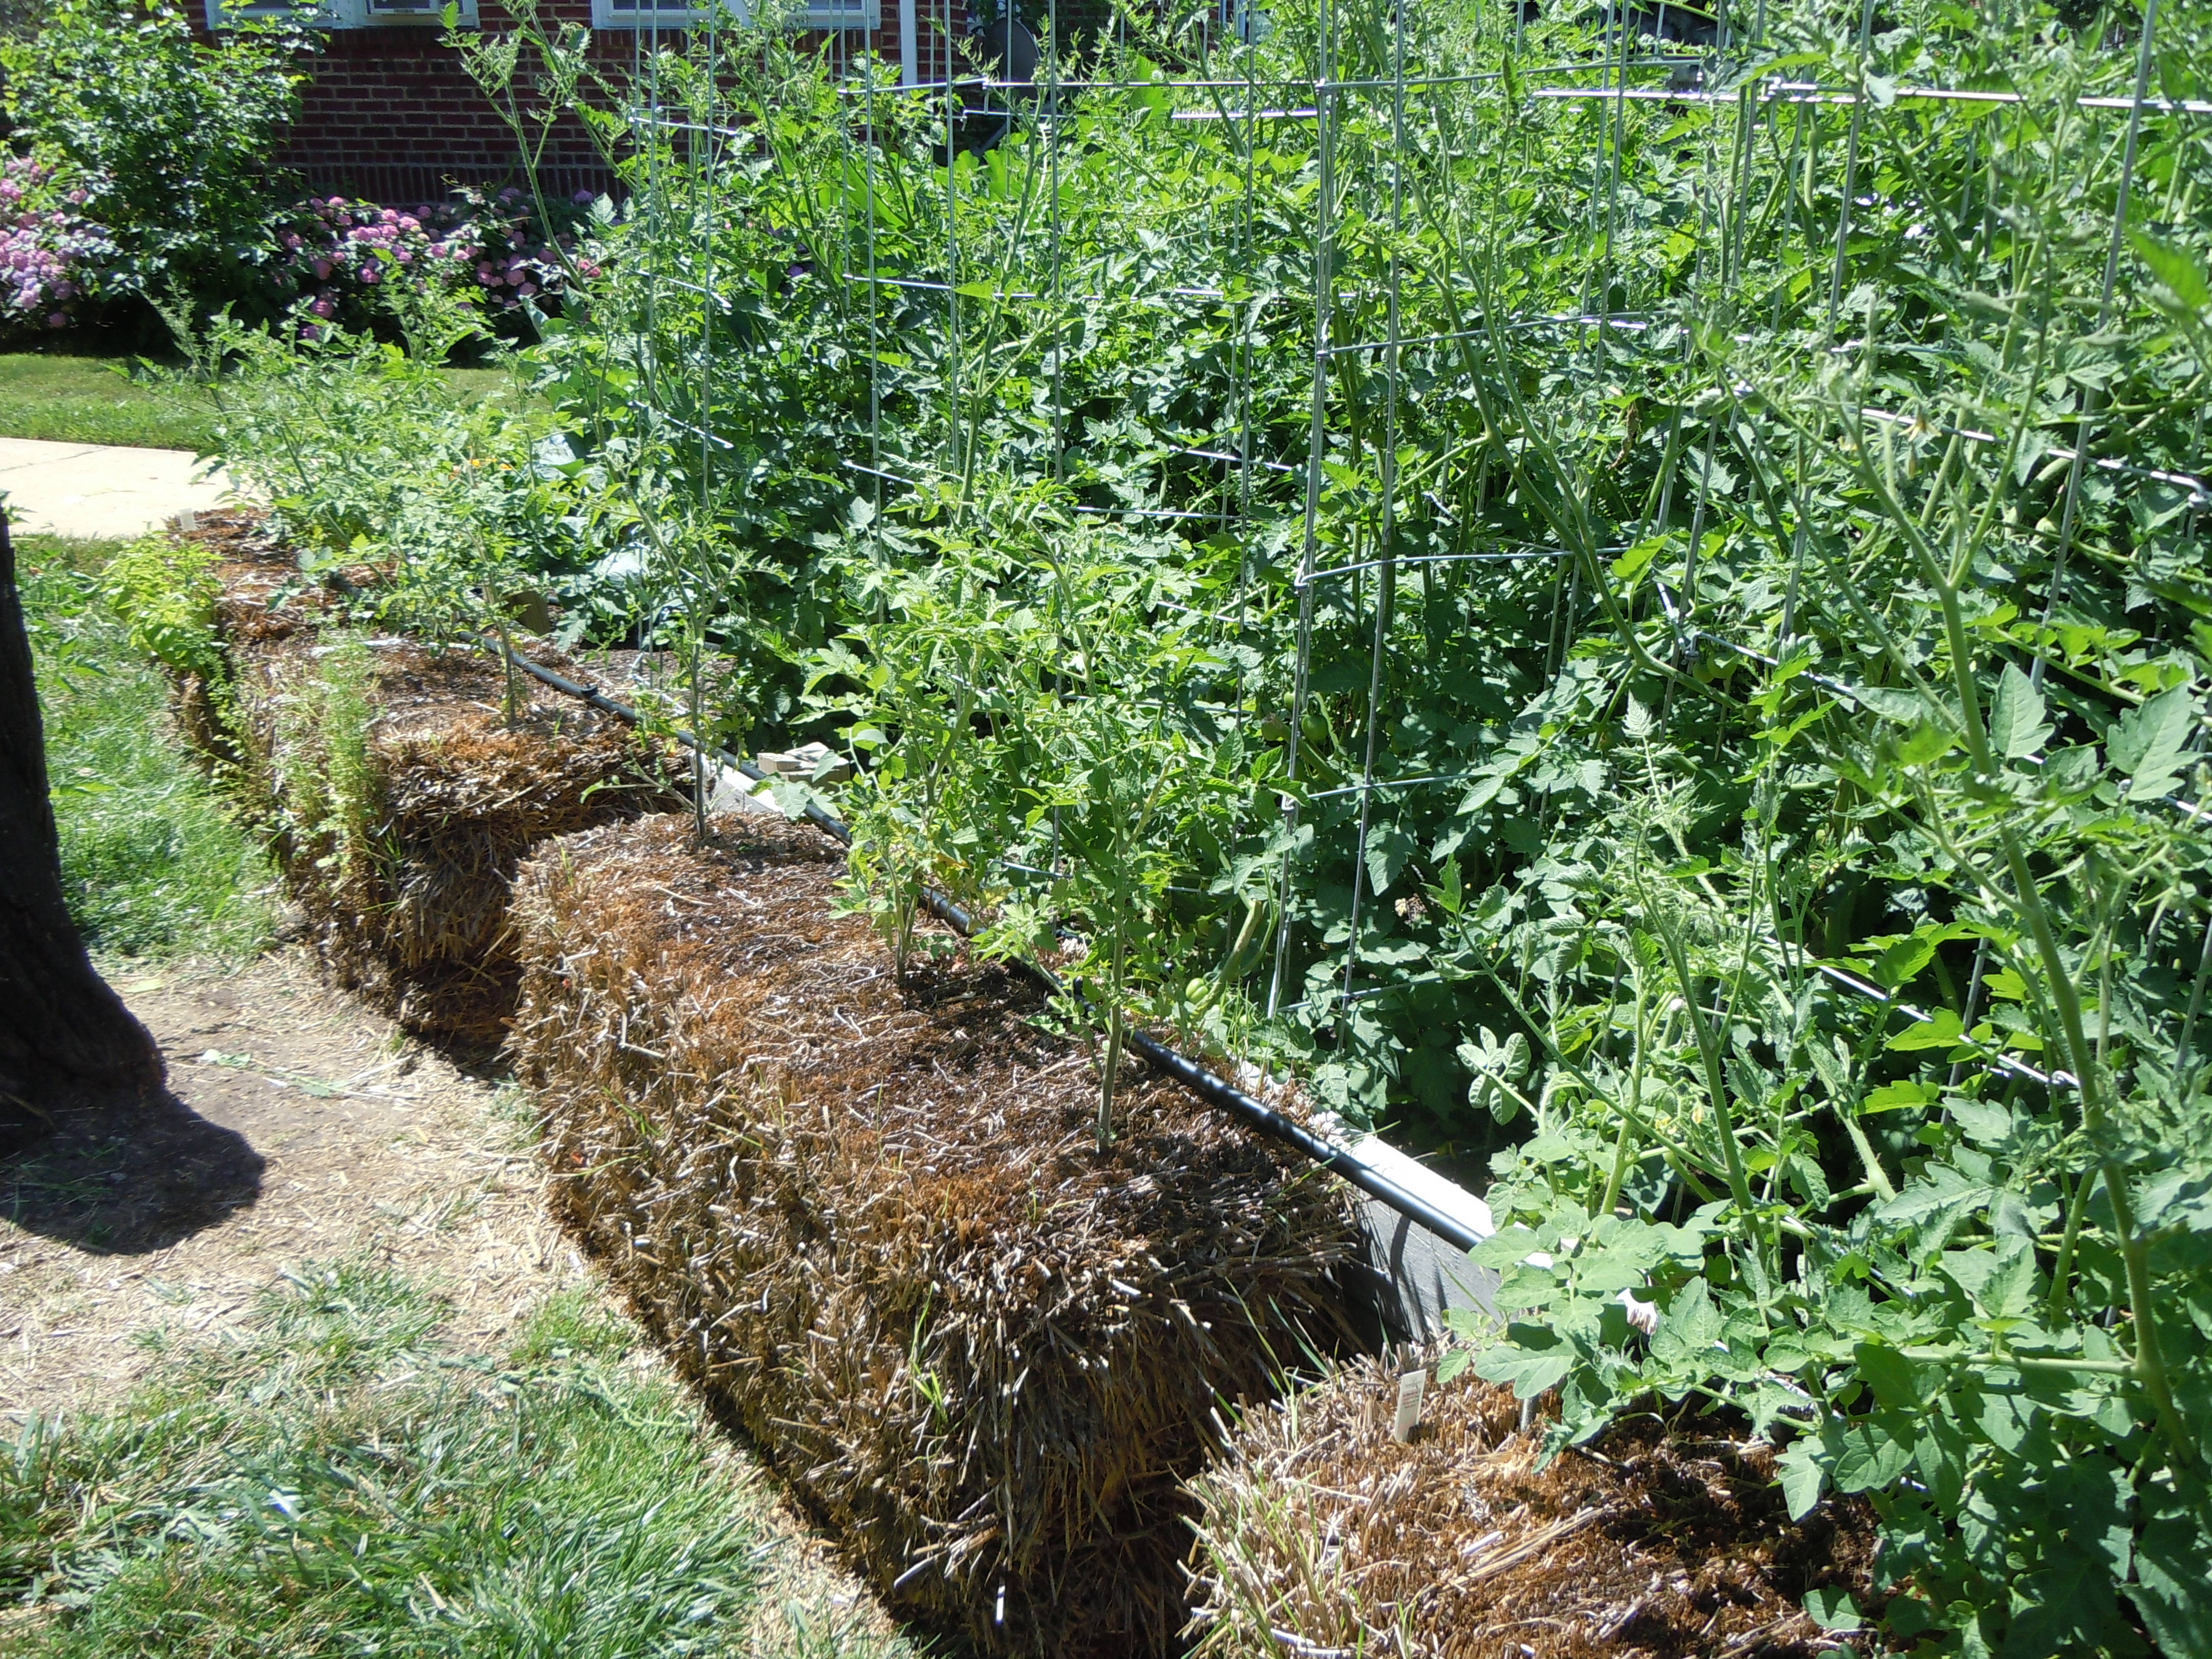 A View With Tomato Plants In The Bales.